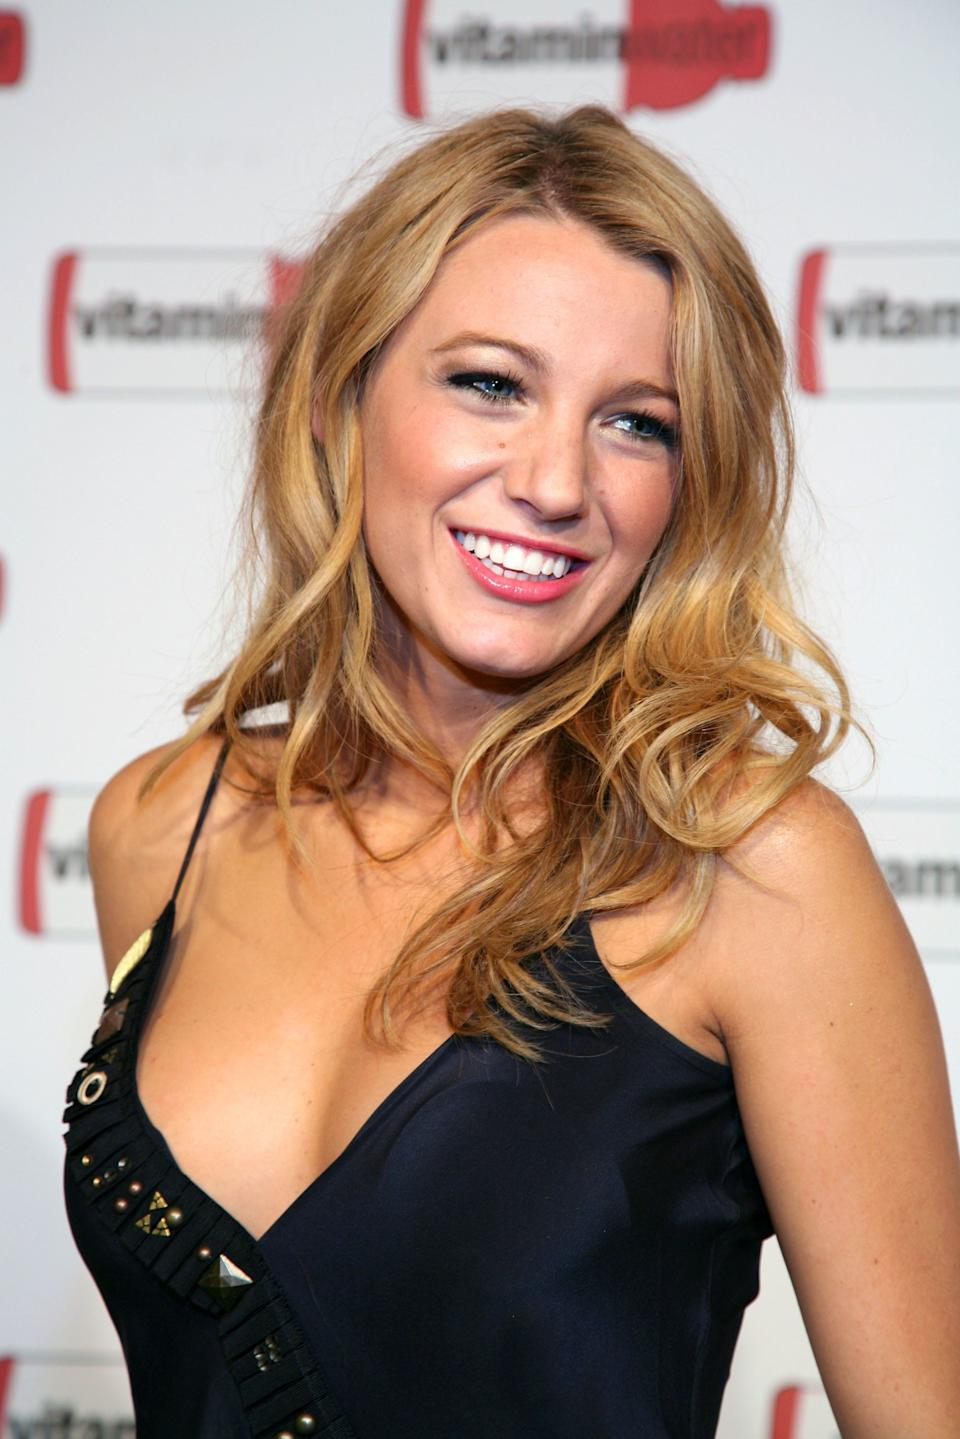 NEW YORK - JULY 14:  Actress Blake Lively attends Vitaminwater's MLB All-Star week celebration at Hudson Terrace on July 14, 2008 in New York City.  (Photo by Astrid Stawiarz/Getty Images)